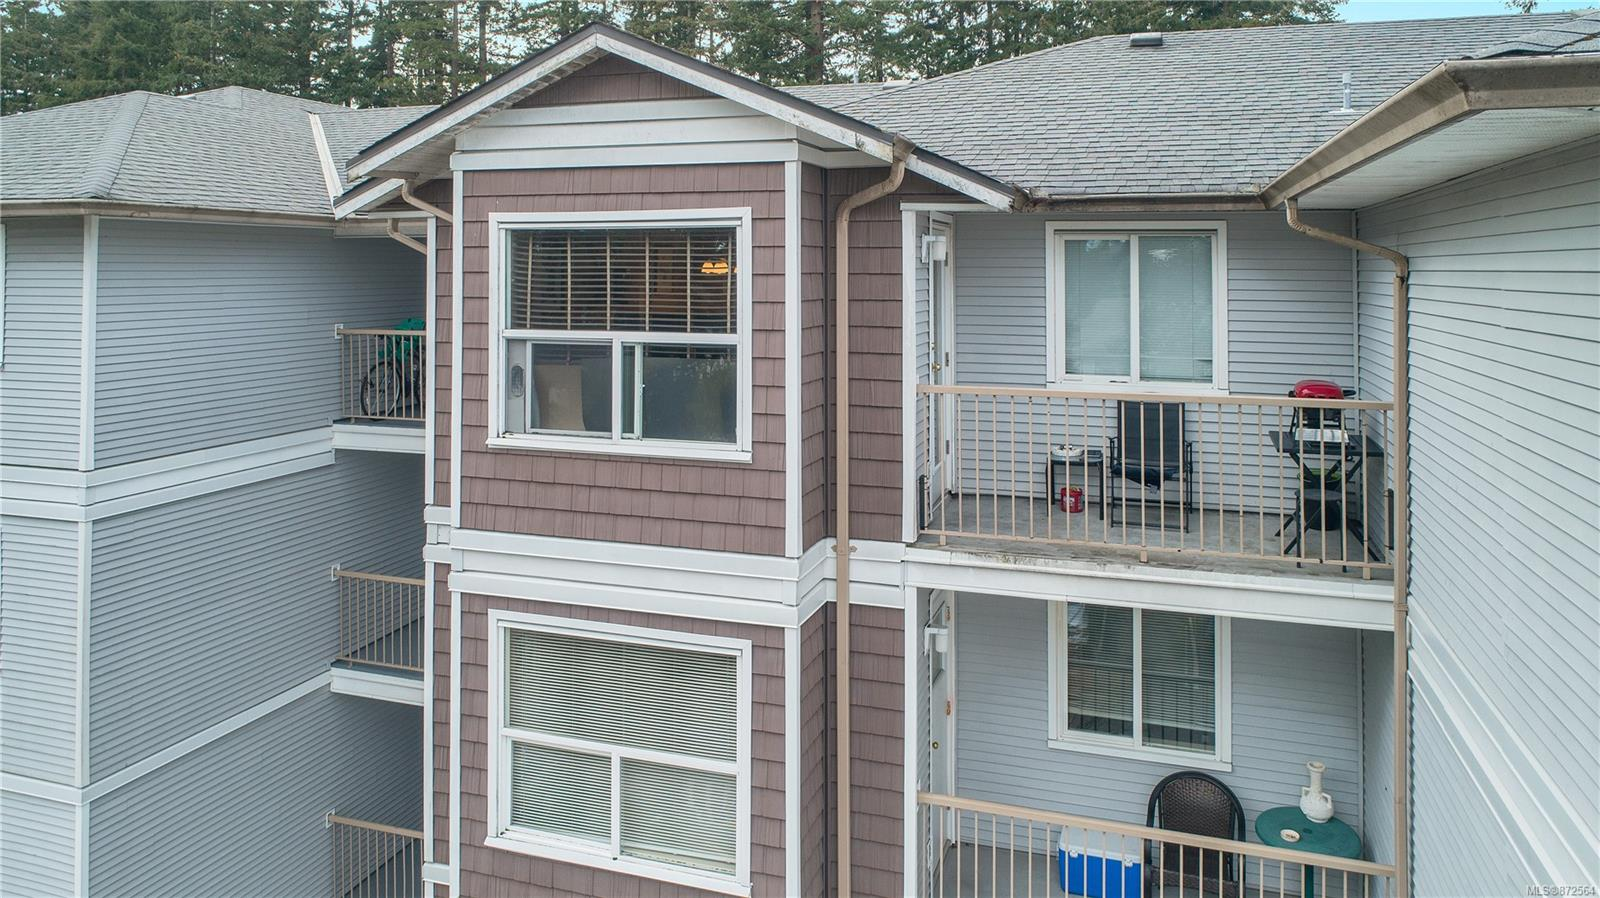 410 - 282 Birch Street, Campbell River Central, Campbell River photo 5